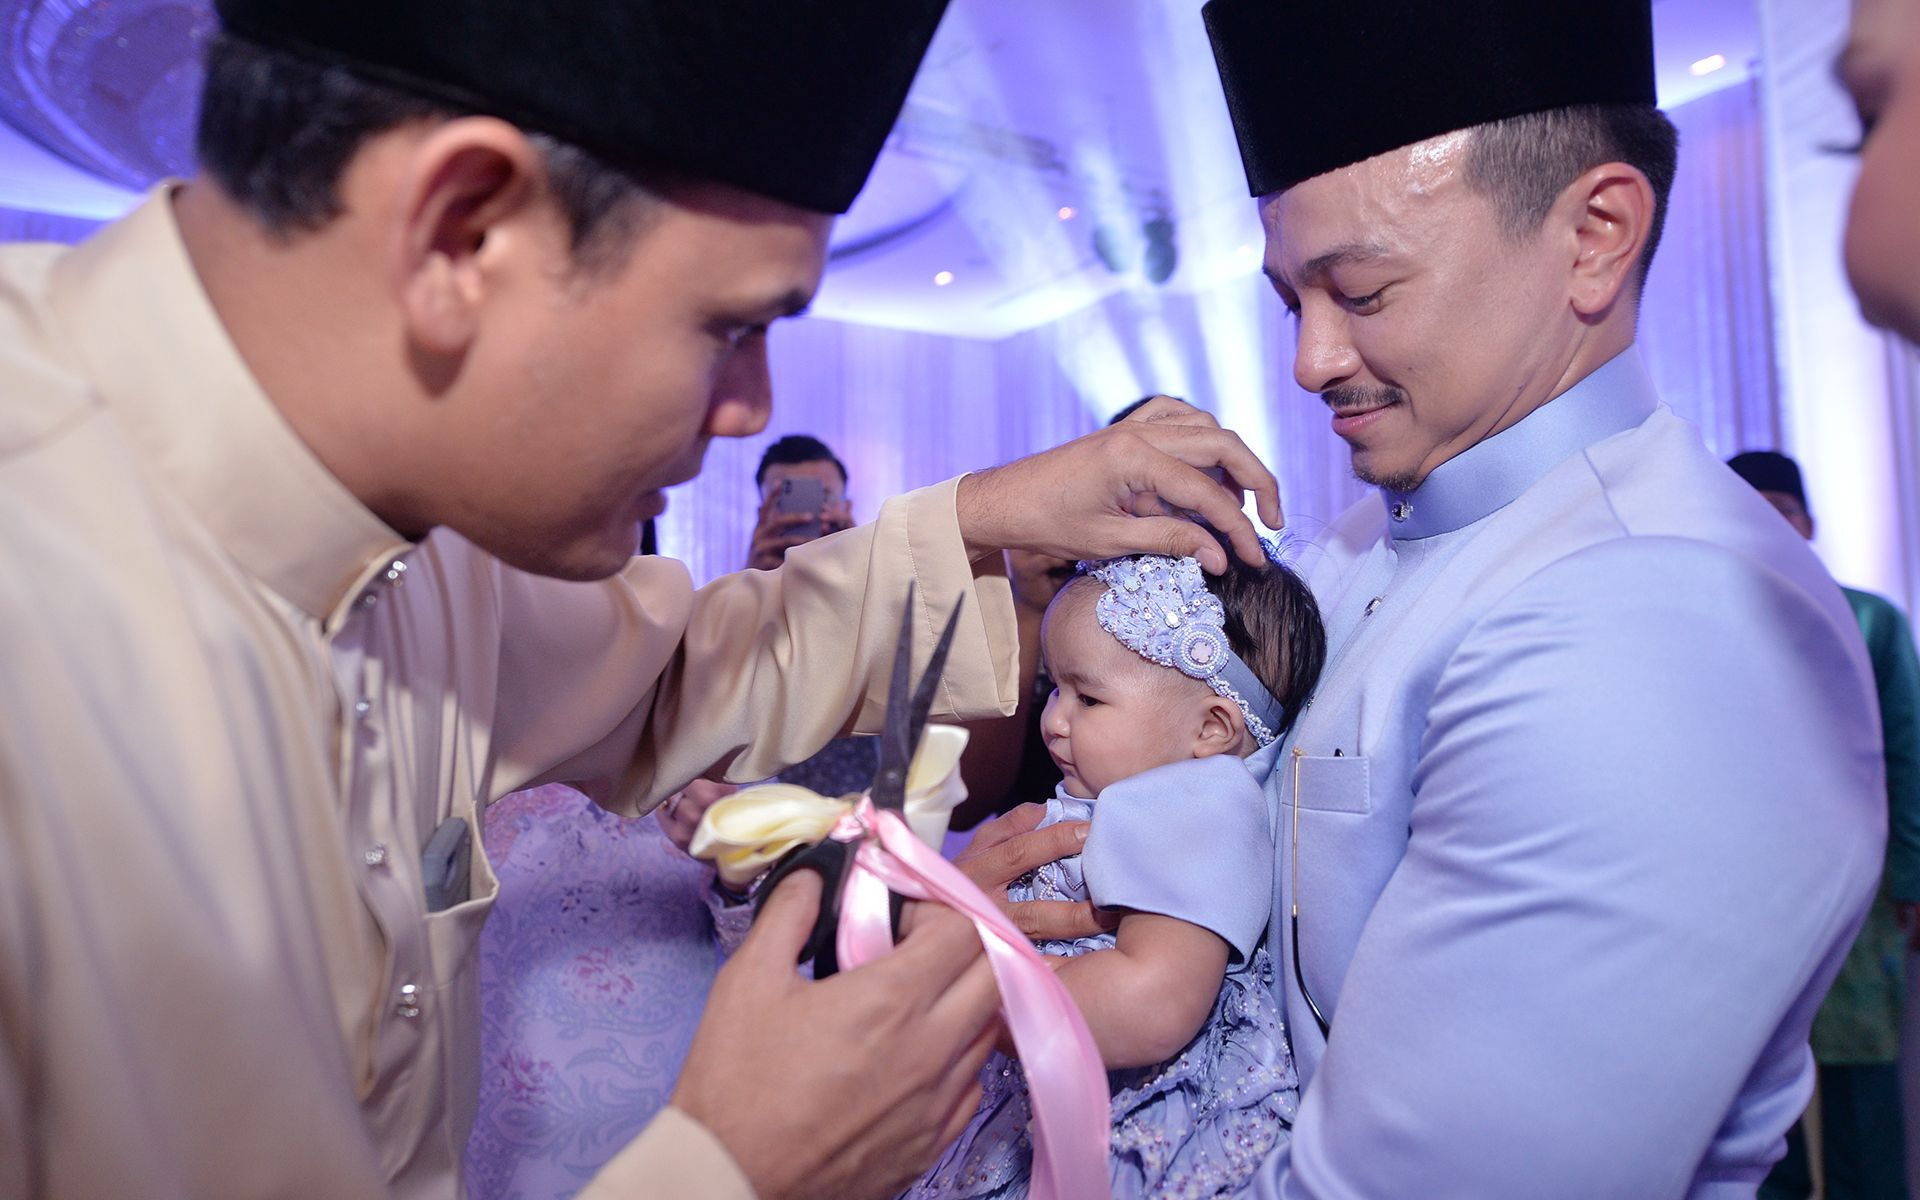 Godfather Yusry Abdul Halim snipping Jeanelle's hair